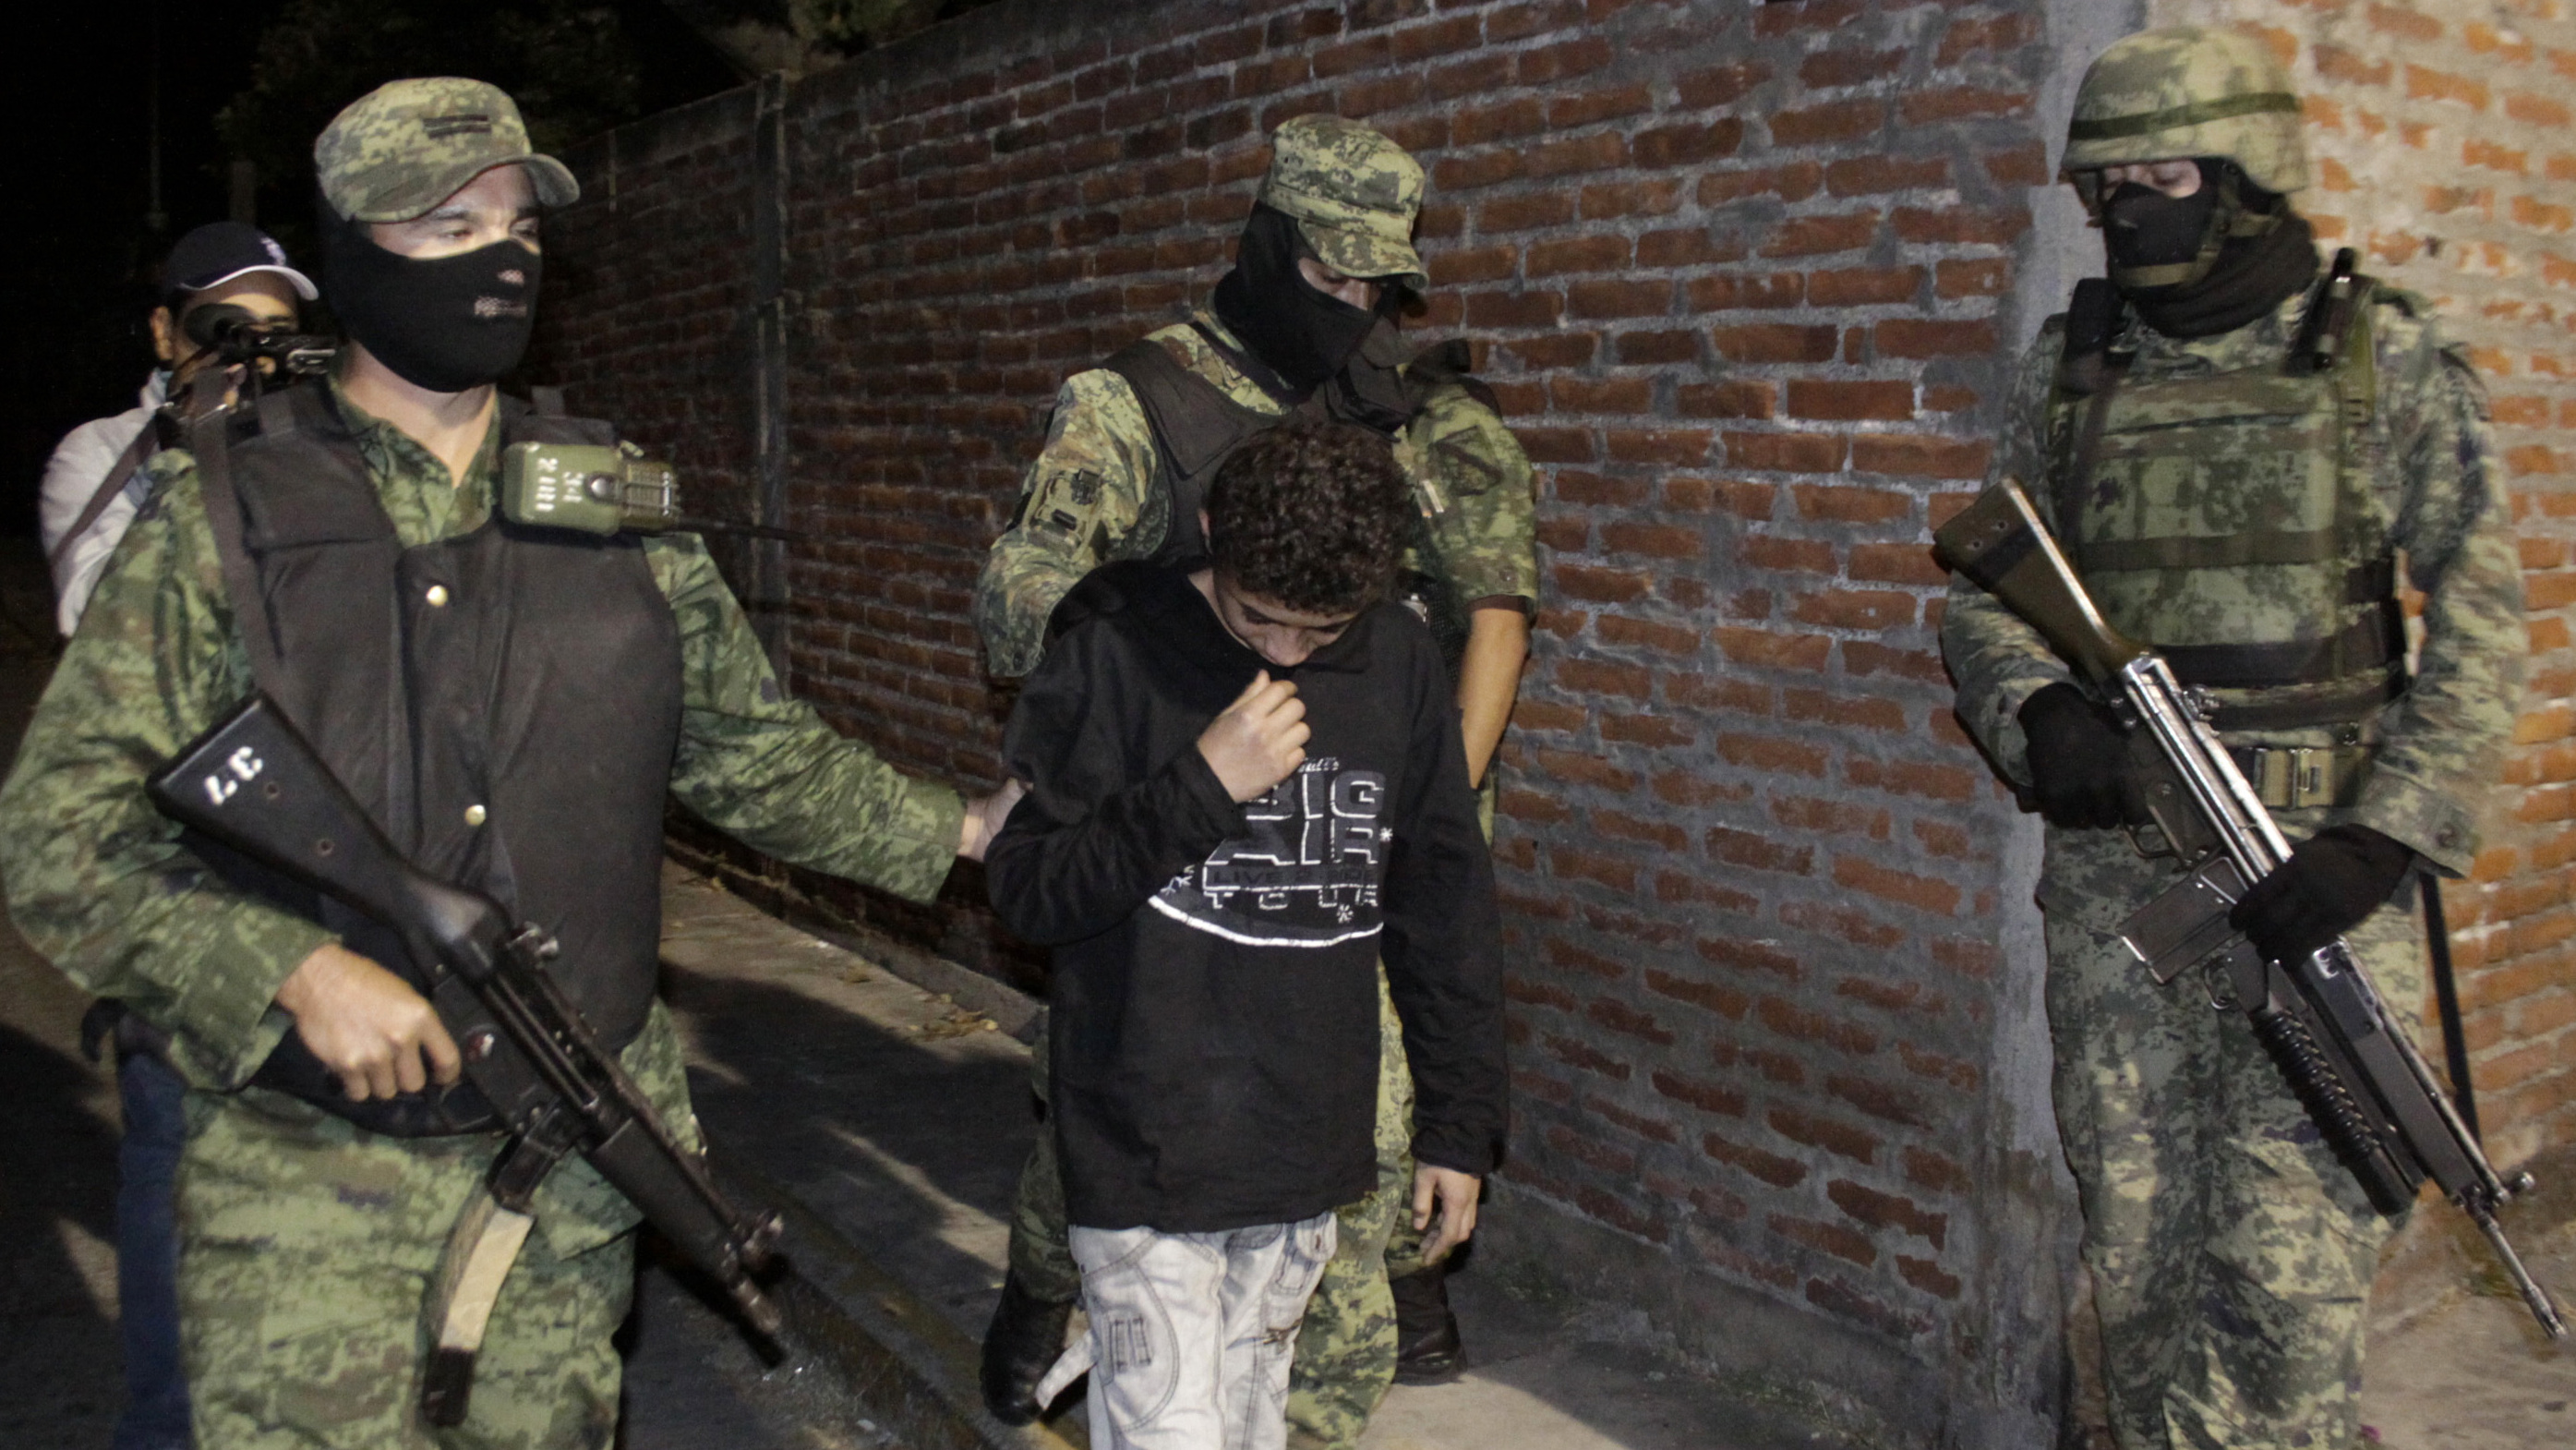 Still A Teenager, Freed Cartel Killer Will Leave Mexico For U.S.